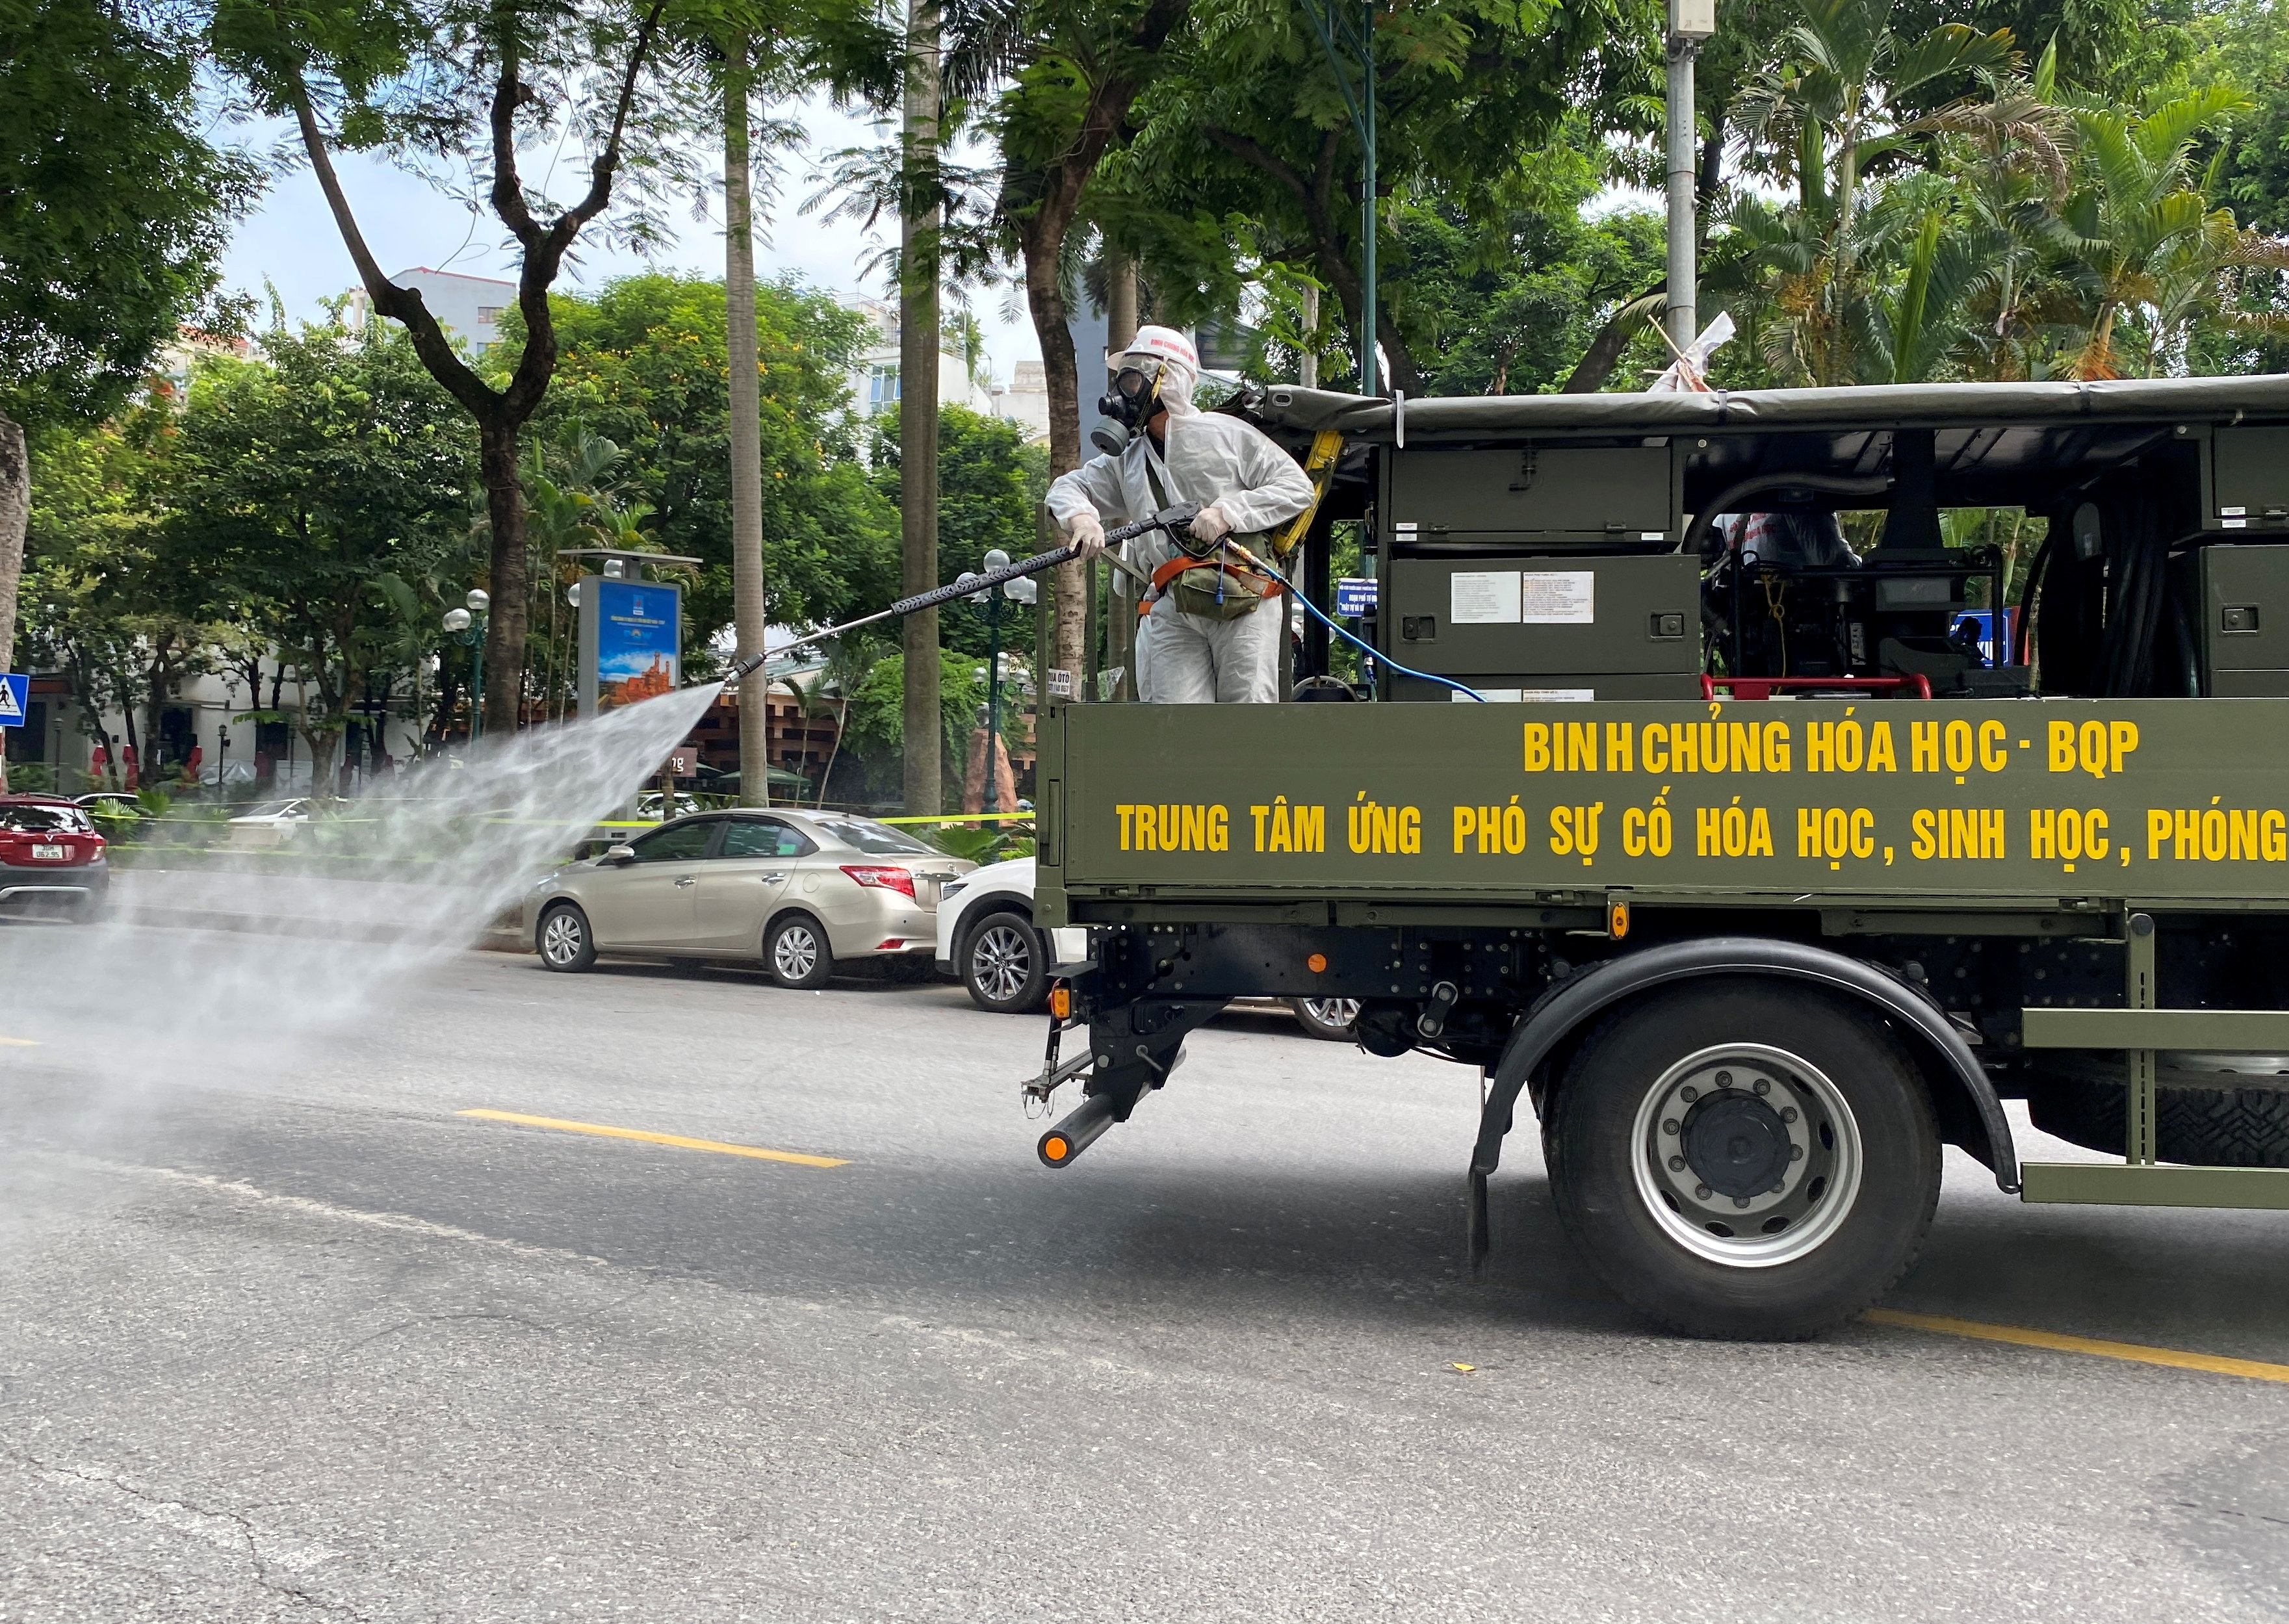 Military personnel spray disinfectant on the streets during a lockdown designed to curb the spread of COVID-19 in Hanoi, Vietnam, on July 26, 2021. REUTERS/Stringer/File Photo